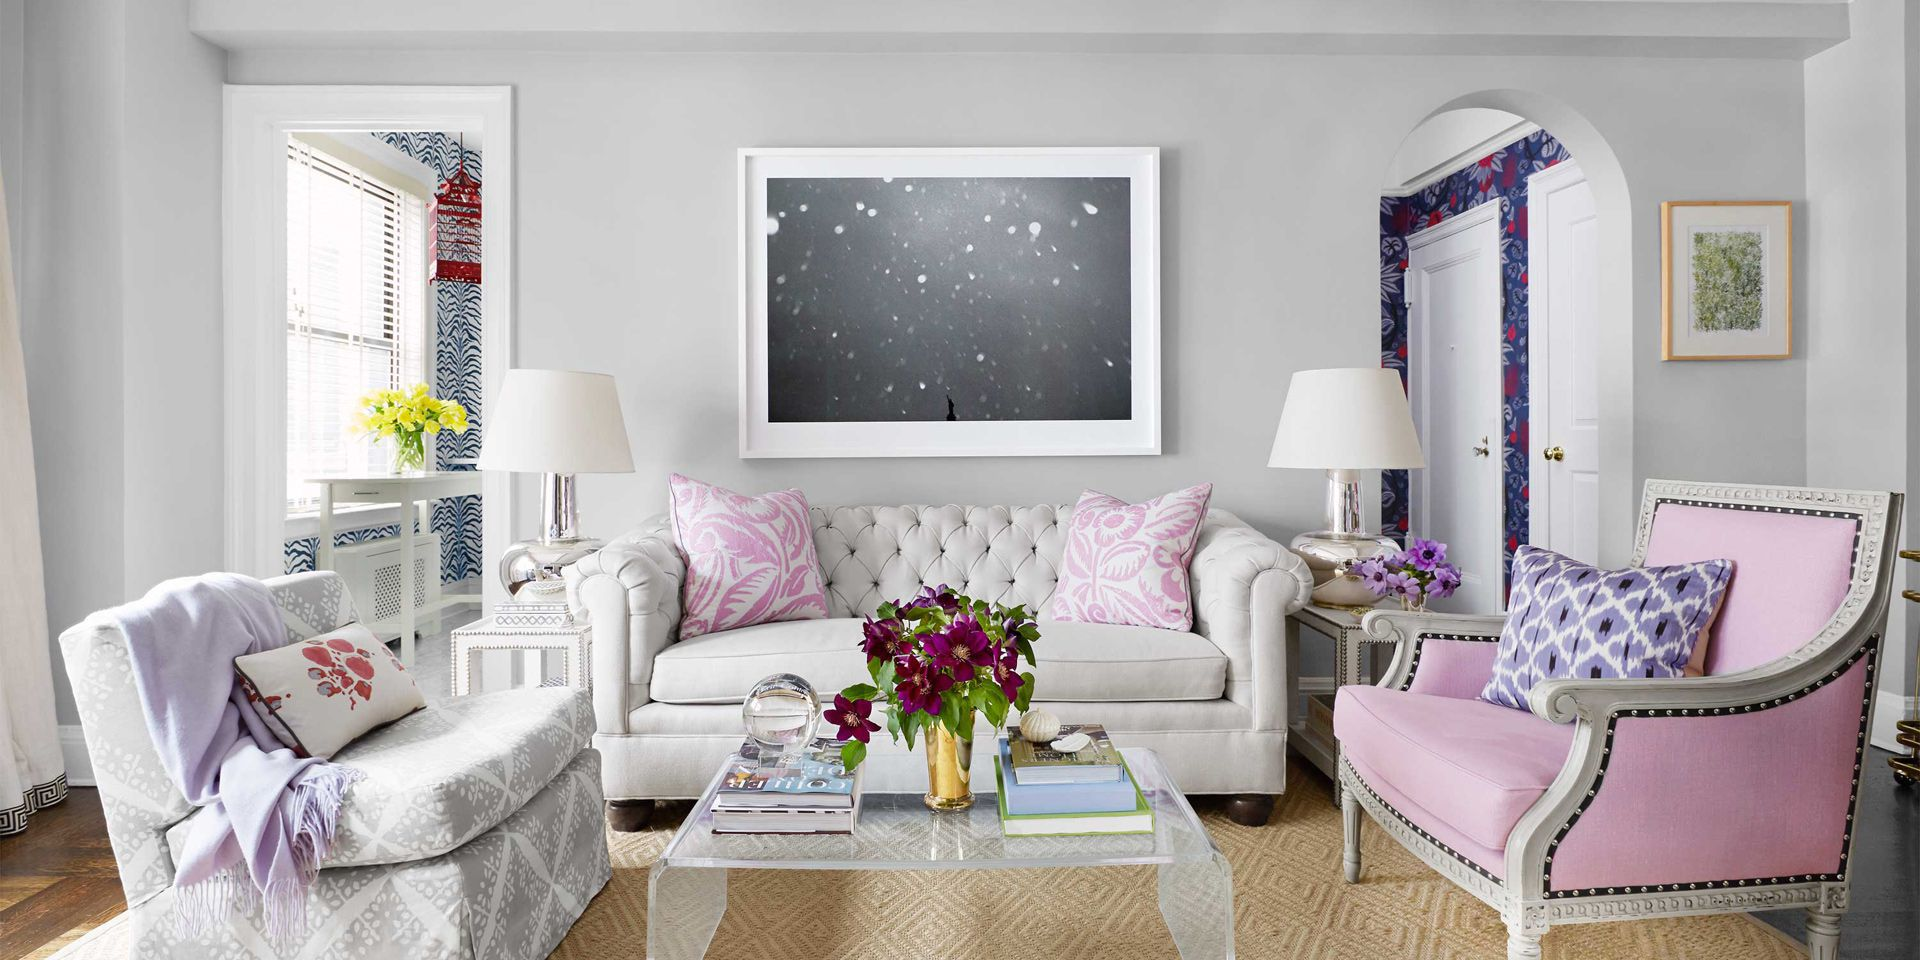 22 Easy Decorating Ideas to Make Over a Room in a Day